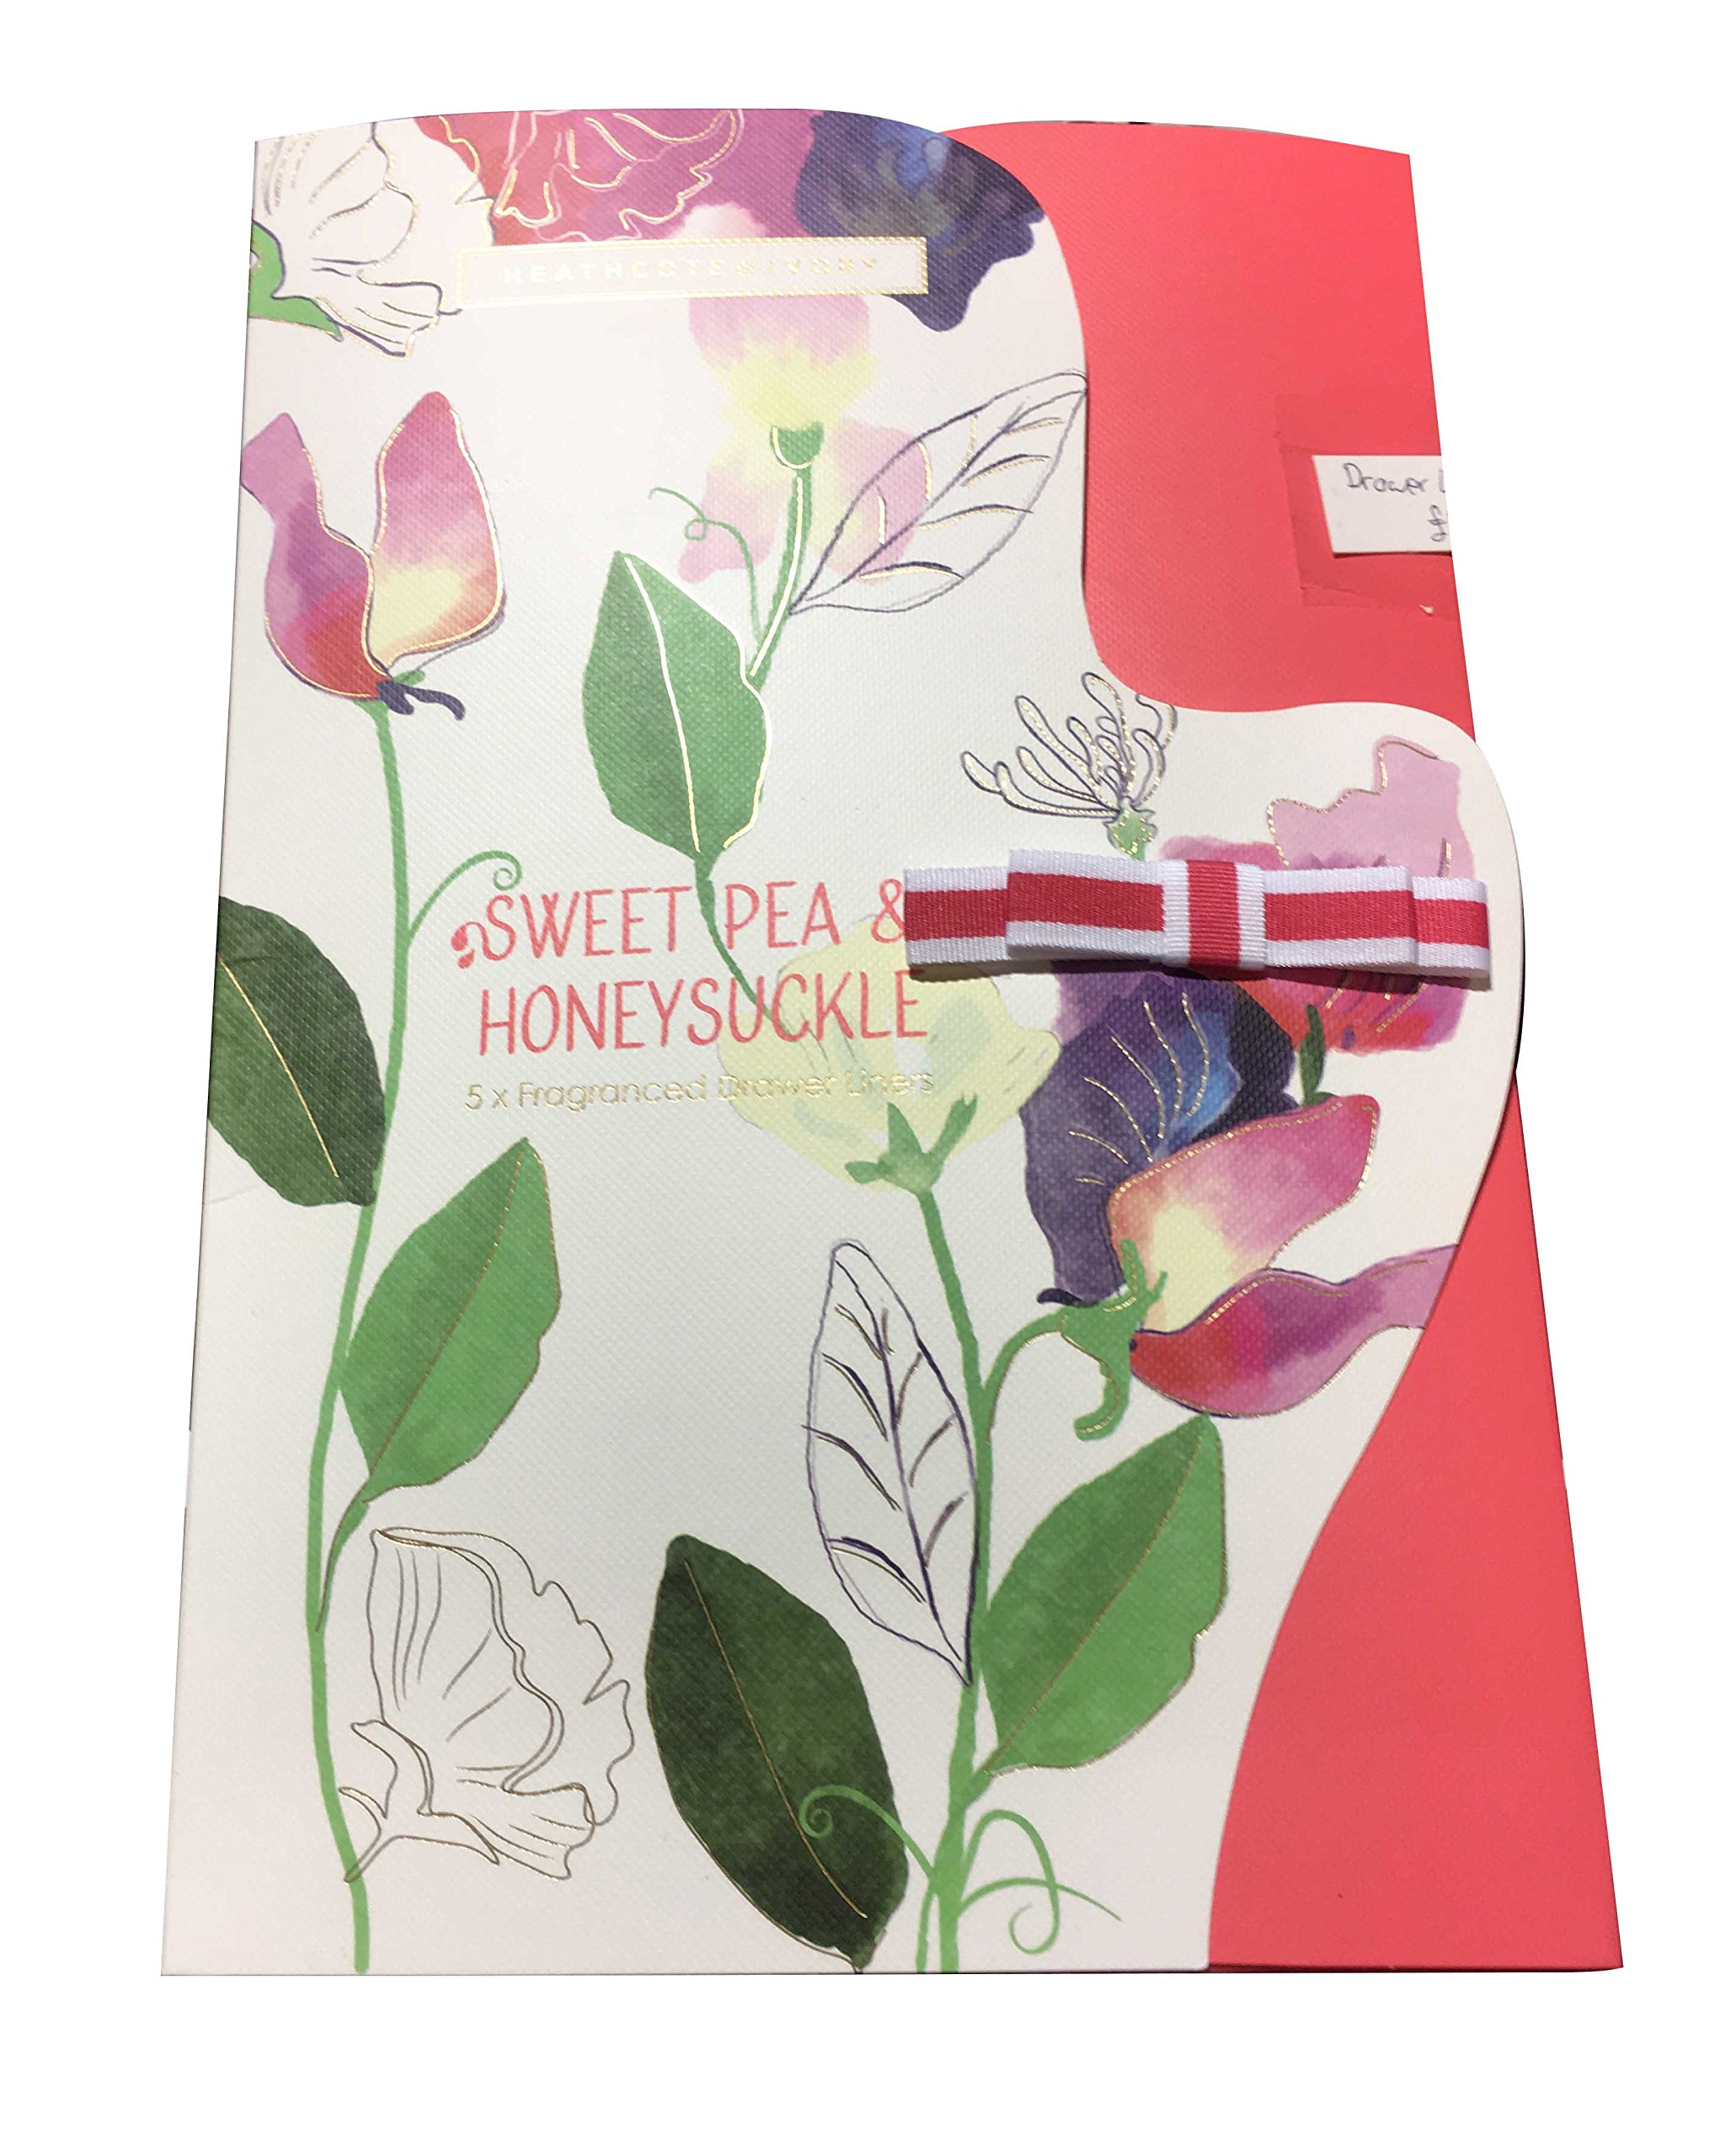 Heathcote Ivory NEW SWEET PEA Fragranced Drawer Liners in envelope style and display tray (5 sheets)